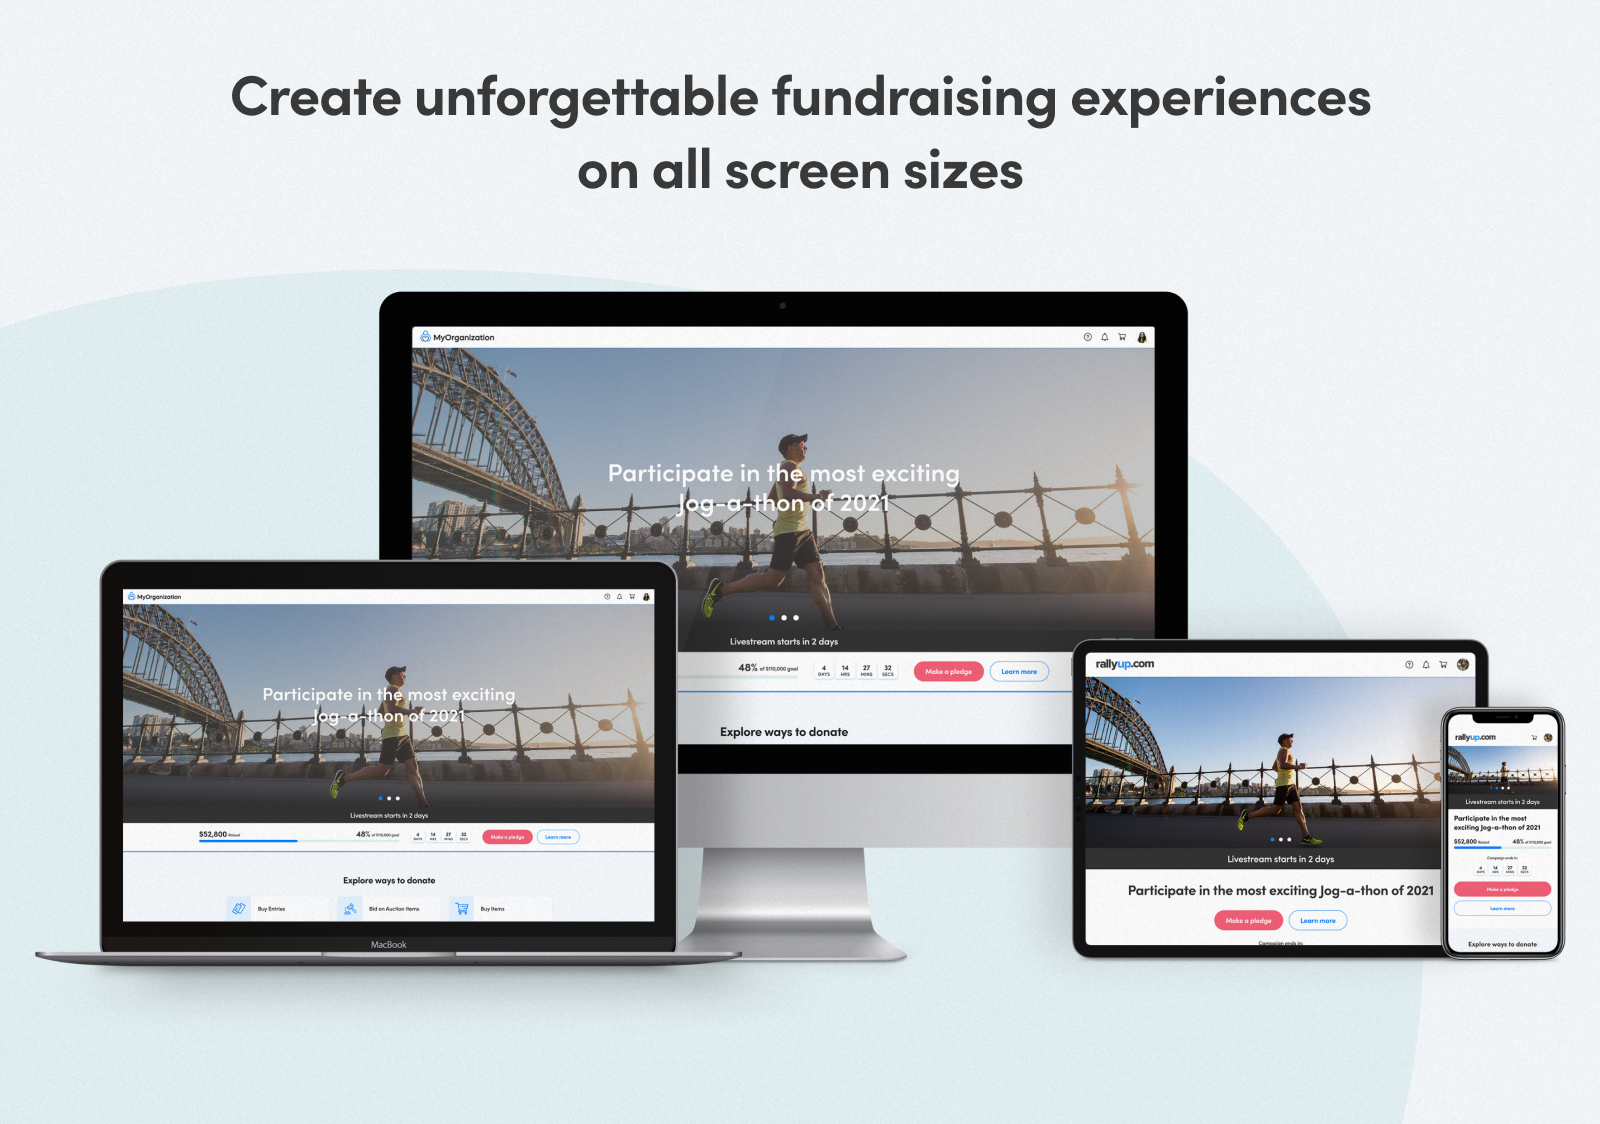 Create unforgettable fundraising on all screen sizes